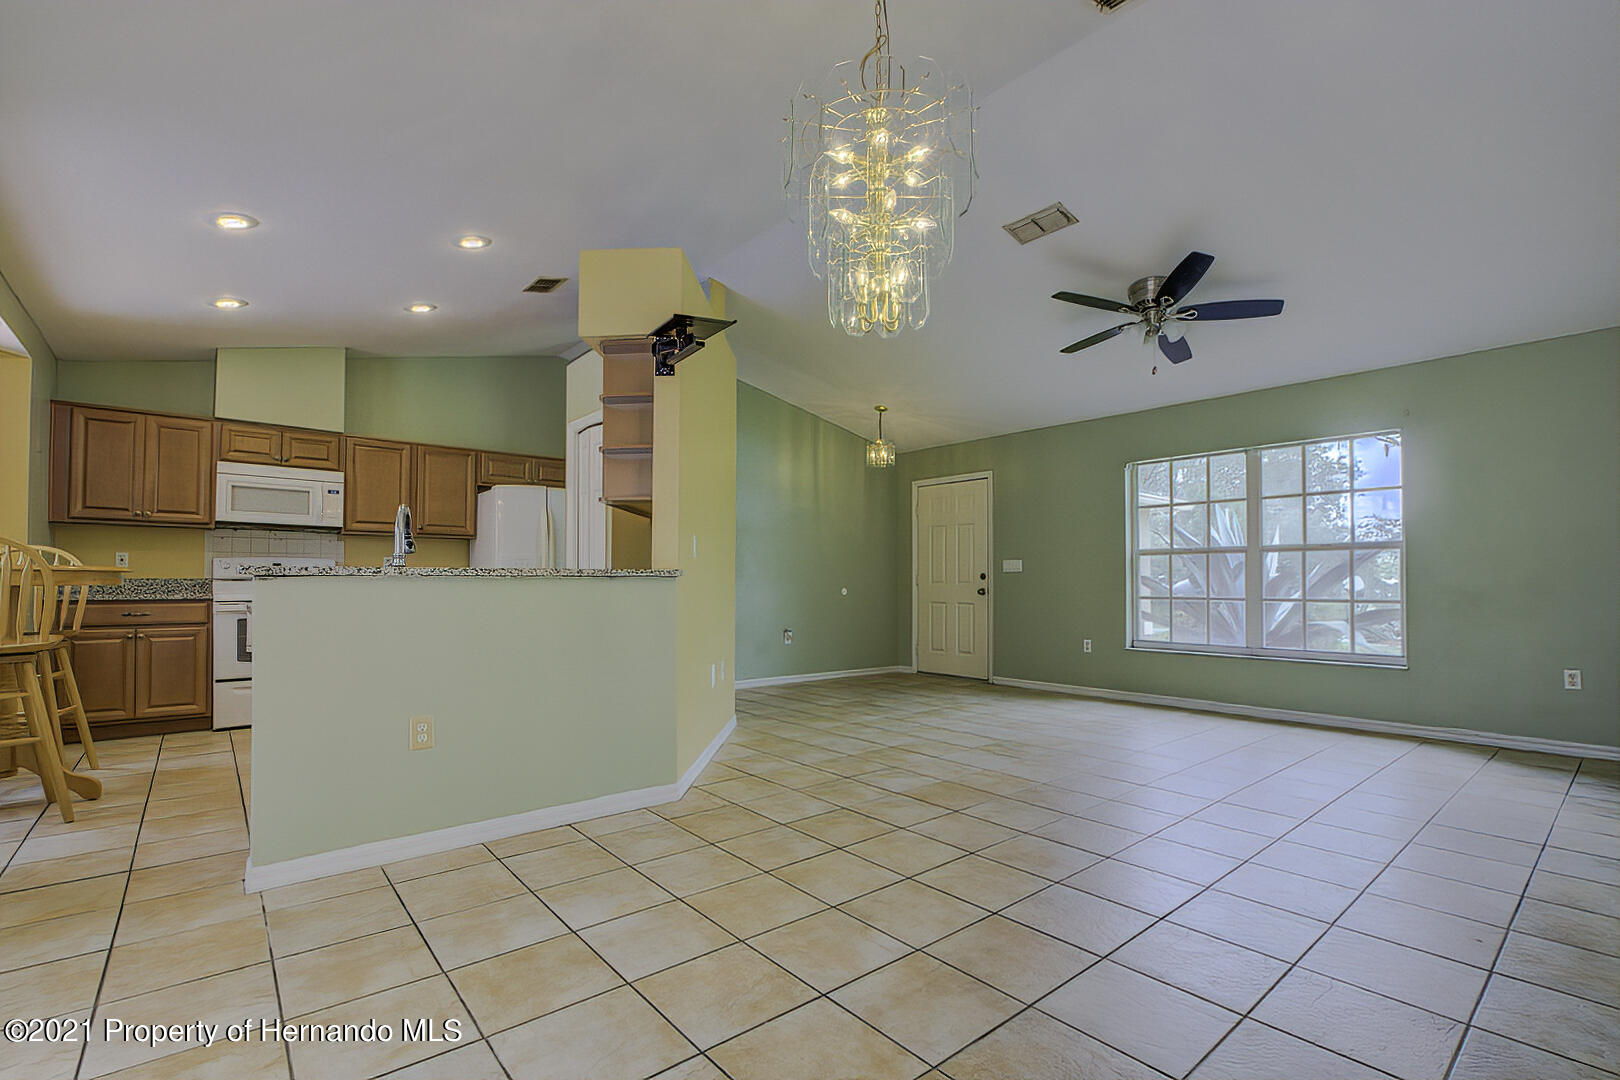 Image 6 of 27 For 12257 Genter Drive